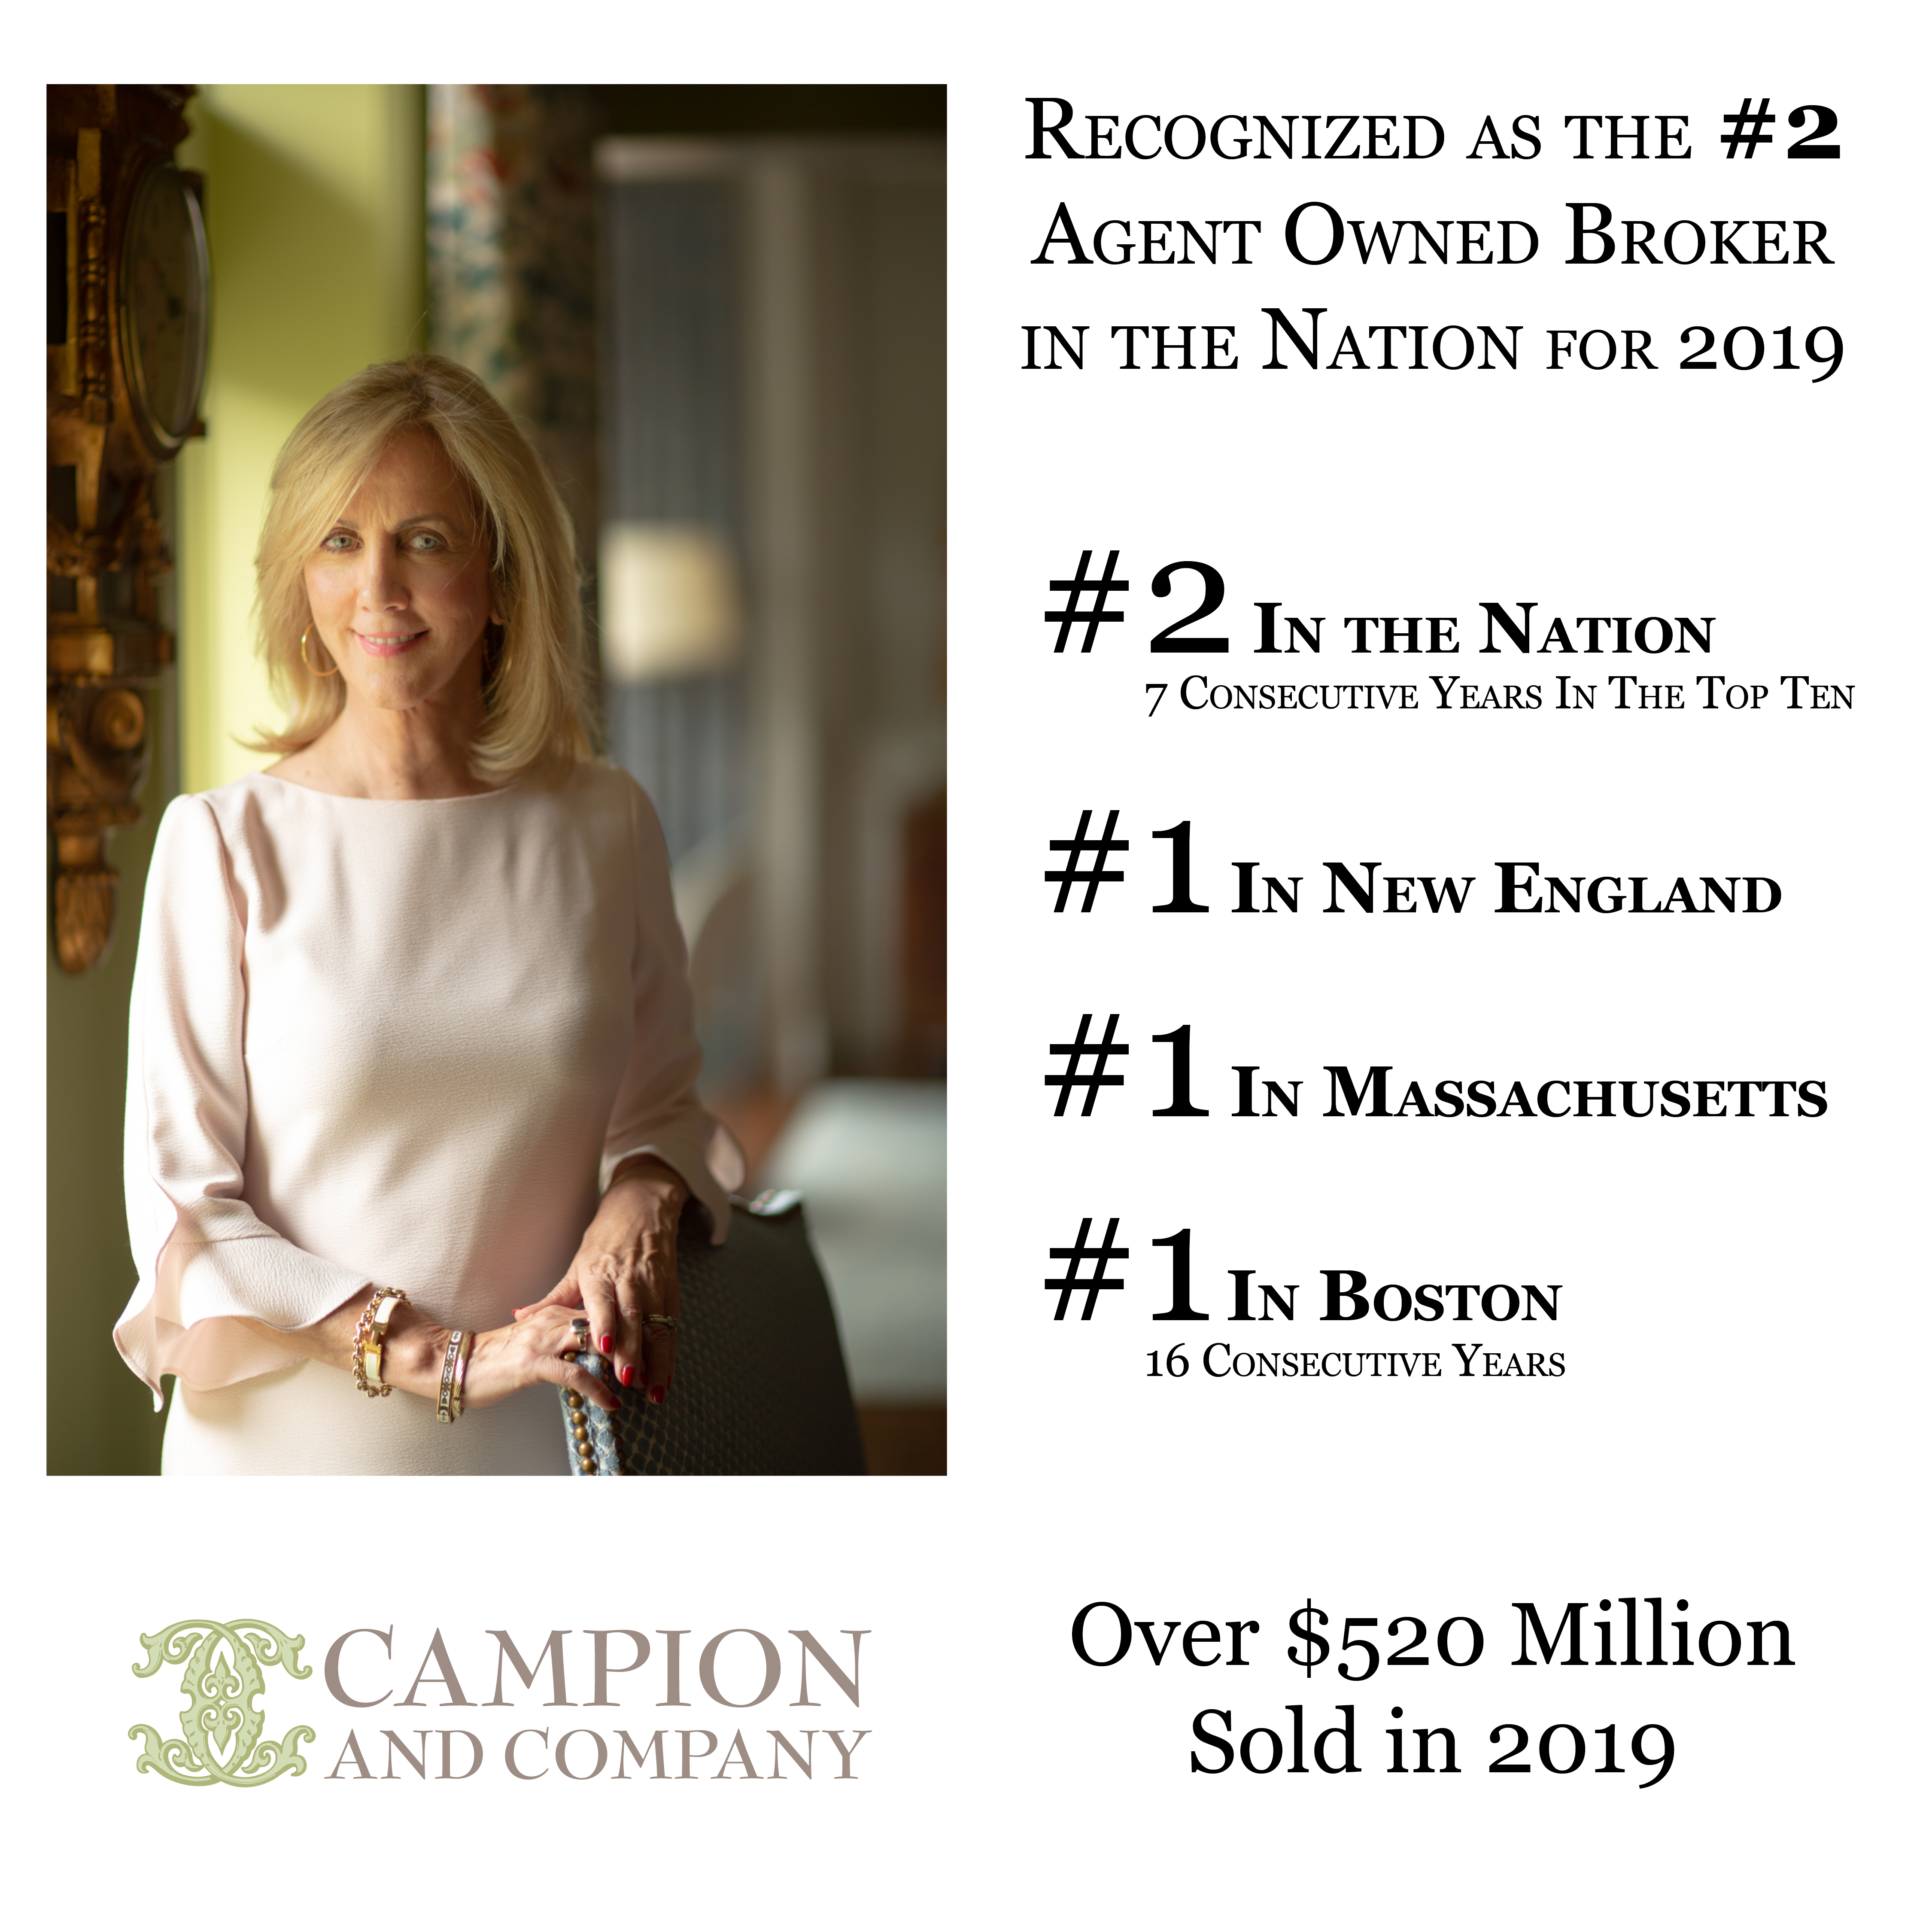 Tracy Campion: #2 Agent Owned Broker in the Nation 2019